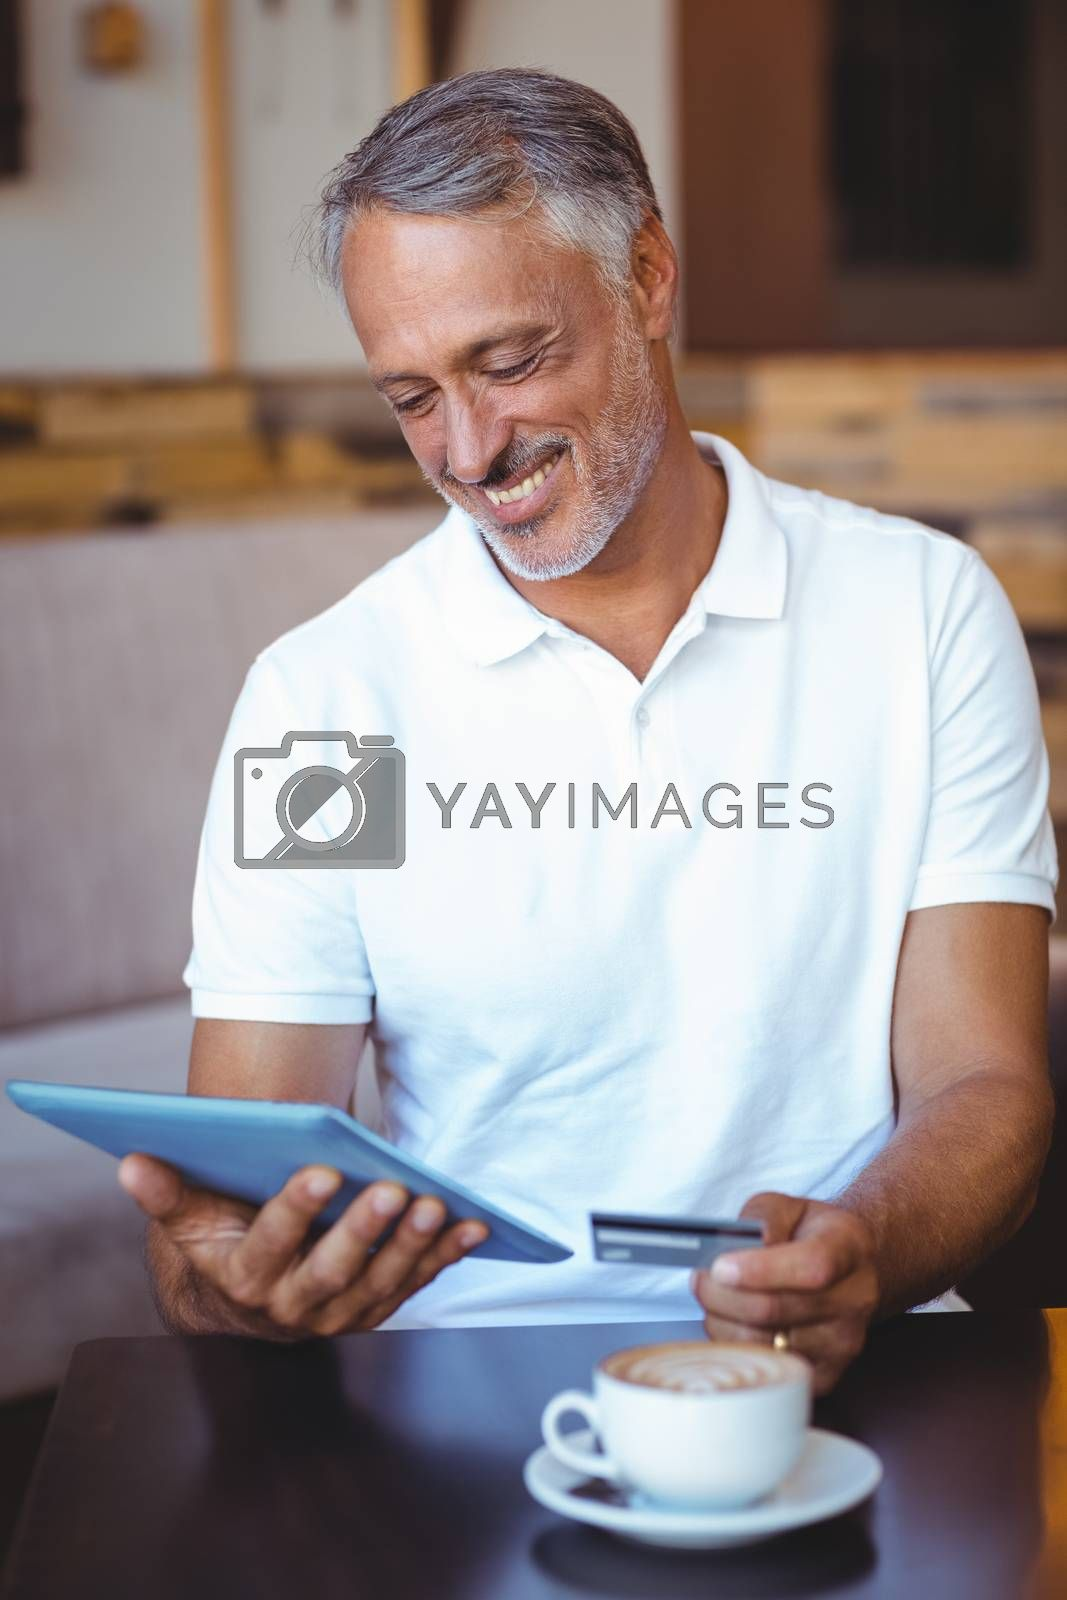 Royalty free image of a customer holding tablet and credit card by Wavebreakmedia